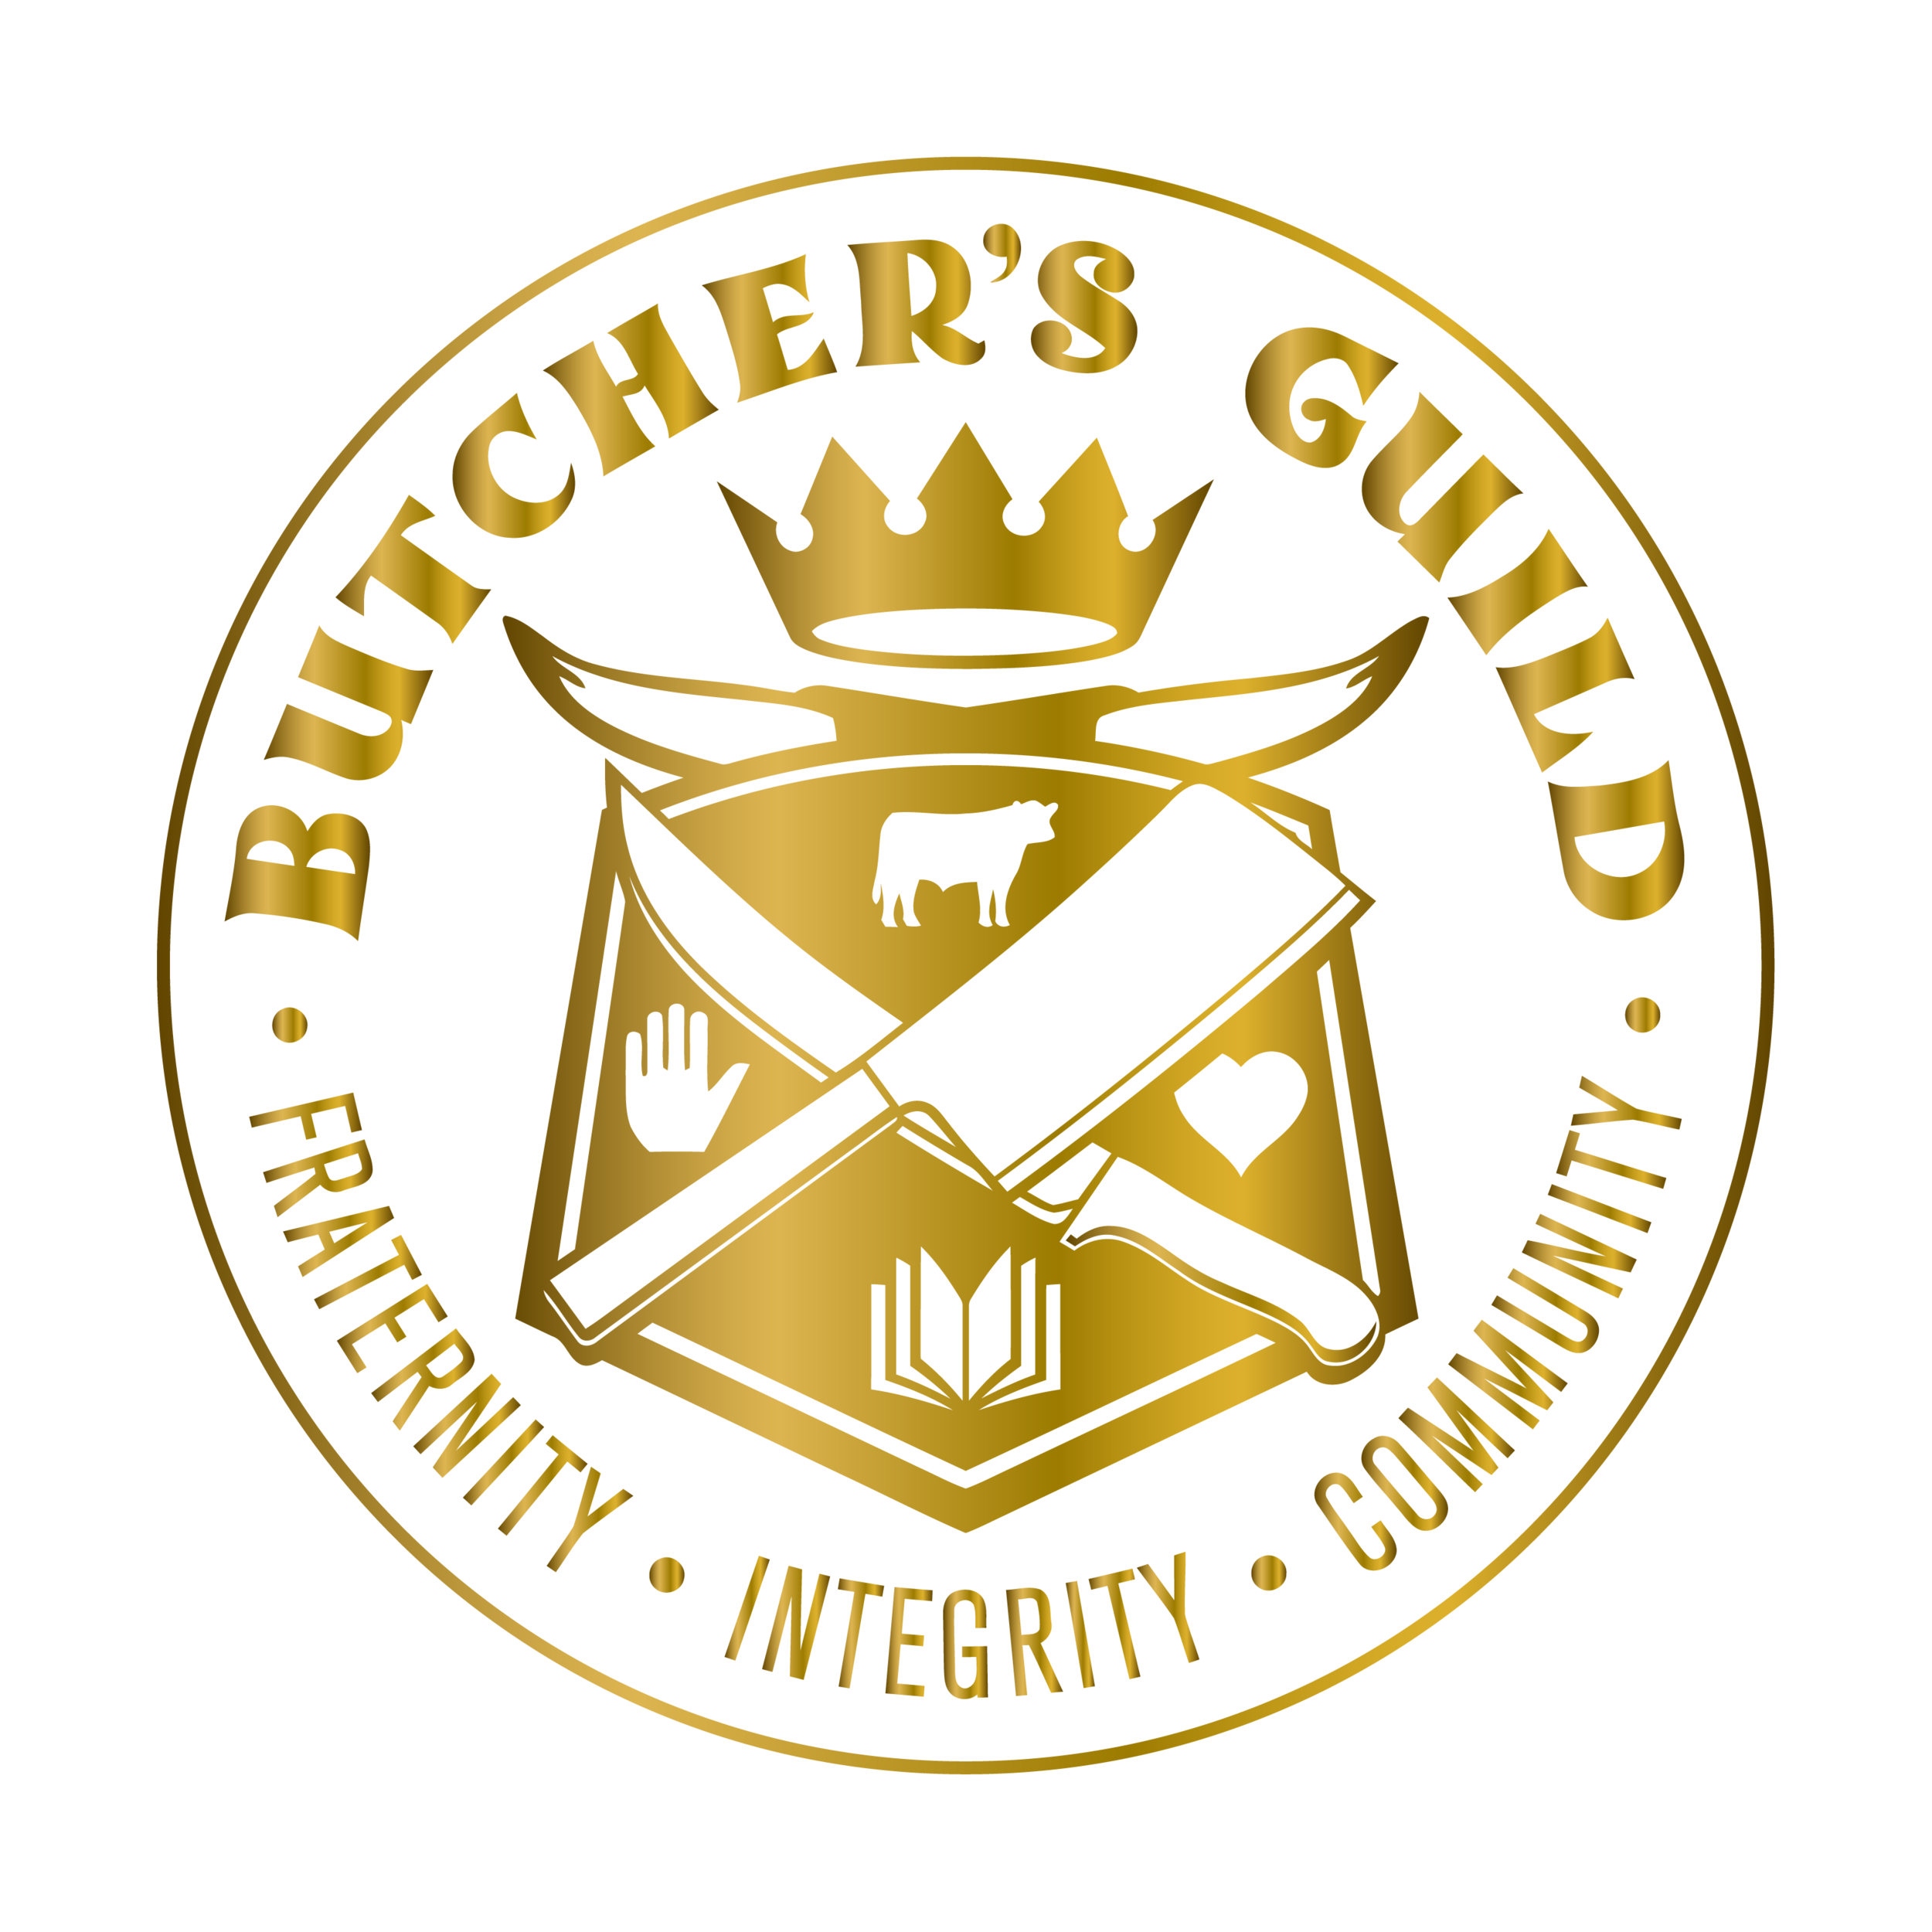 390482_TheButchersGuildLogo_White&Gold_Opt2_031819.png